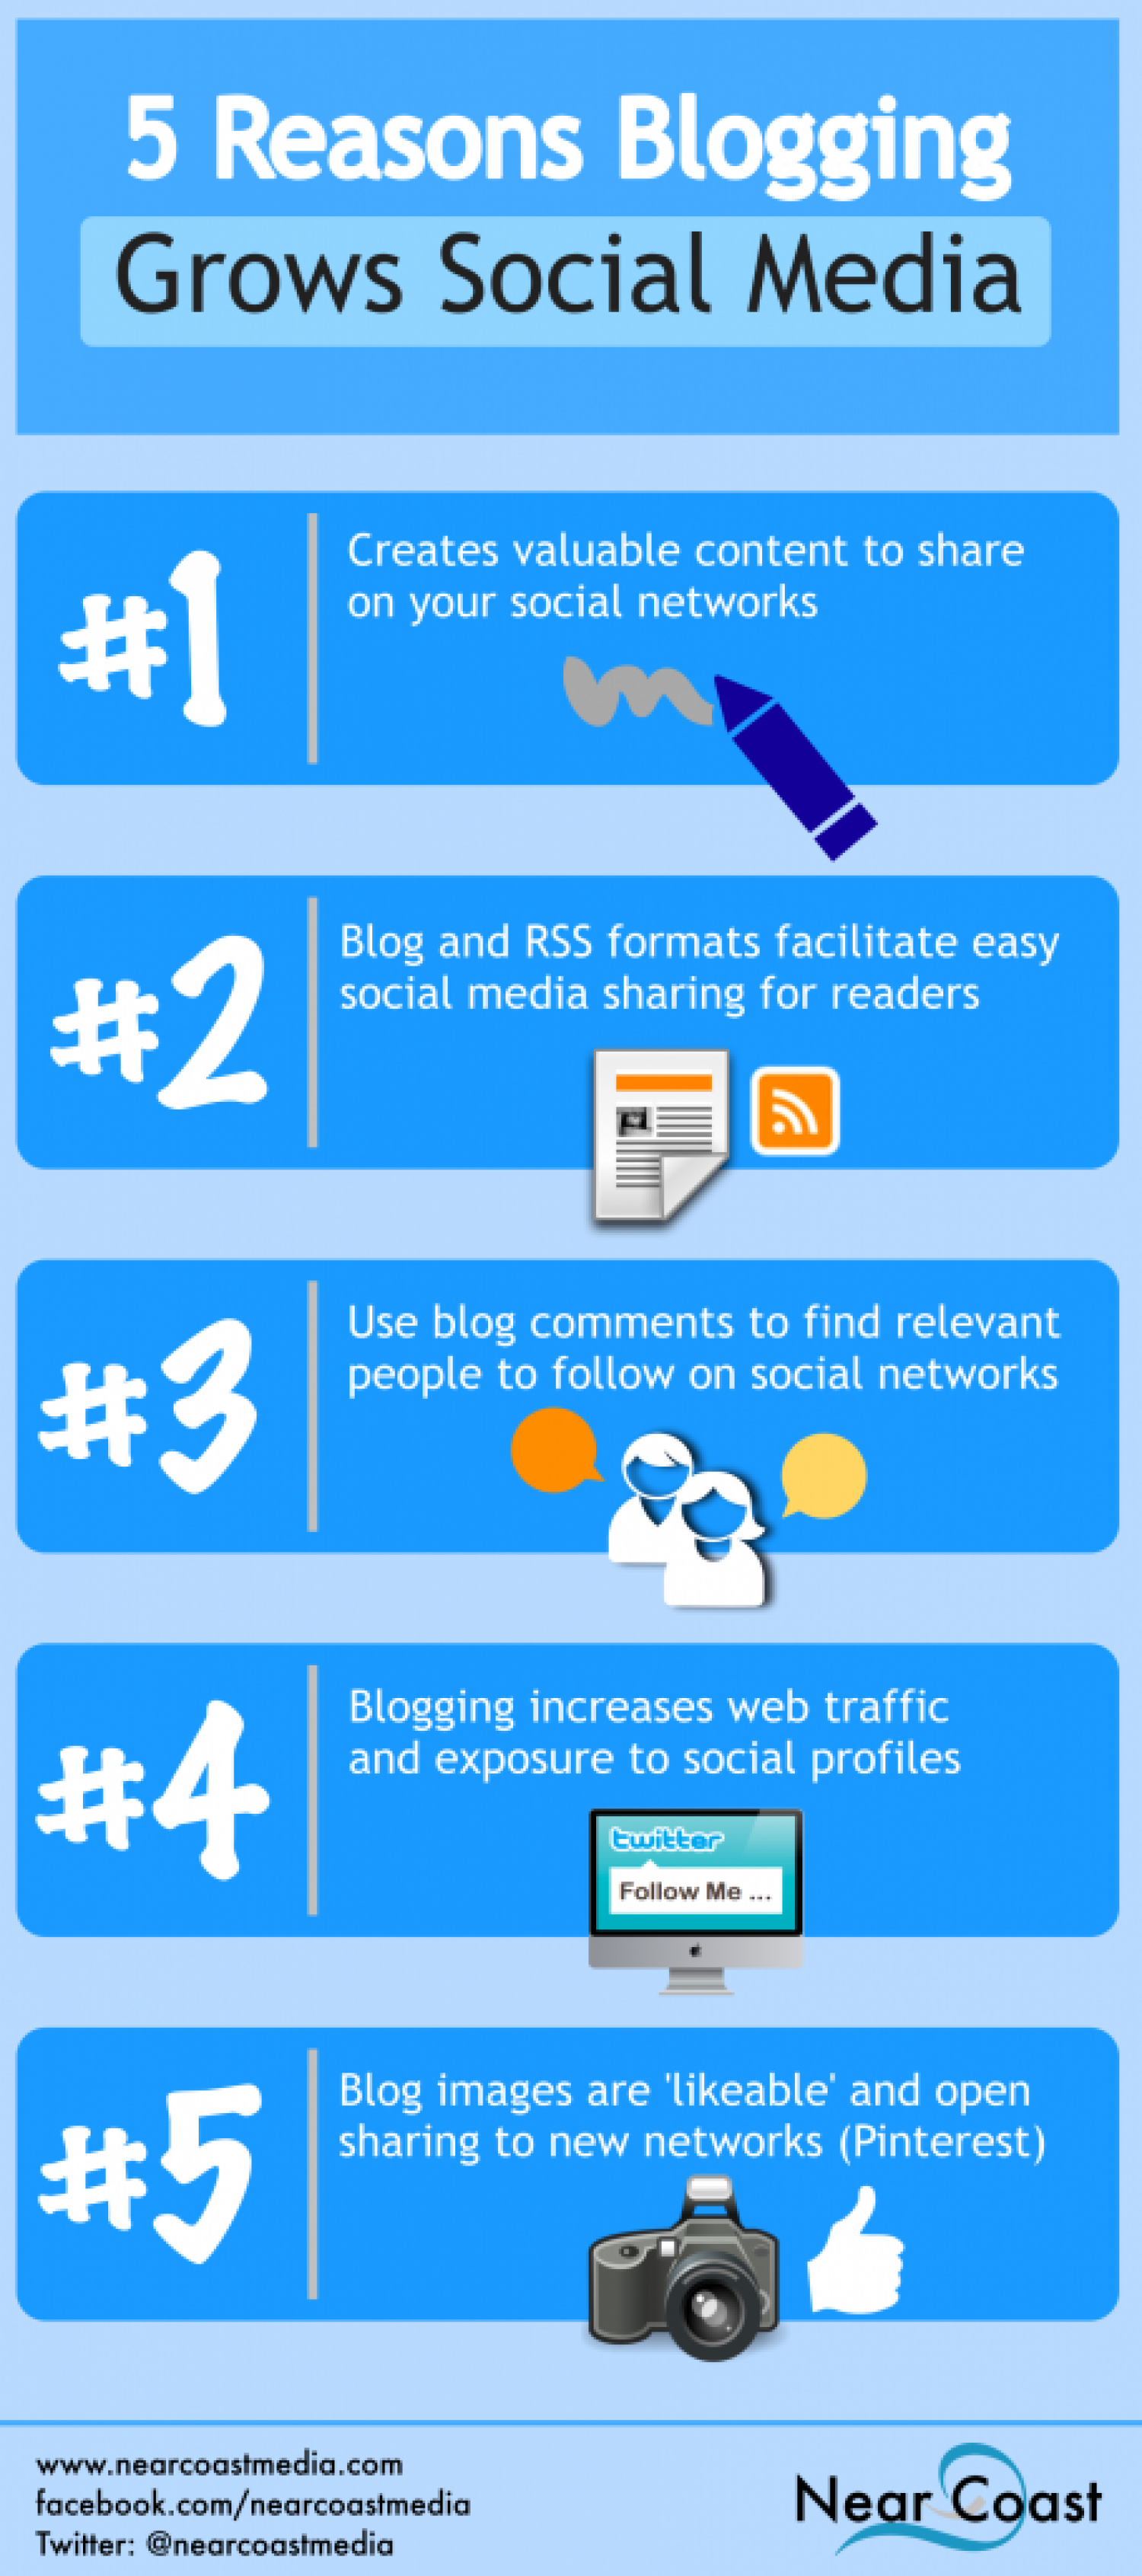 5 Reasons Blogging Grows Social Media Infographic